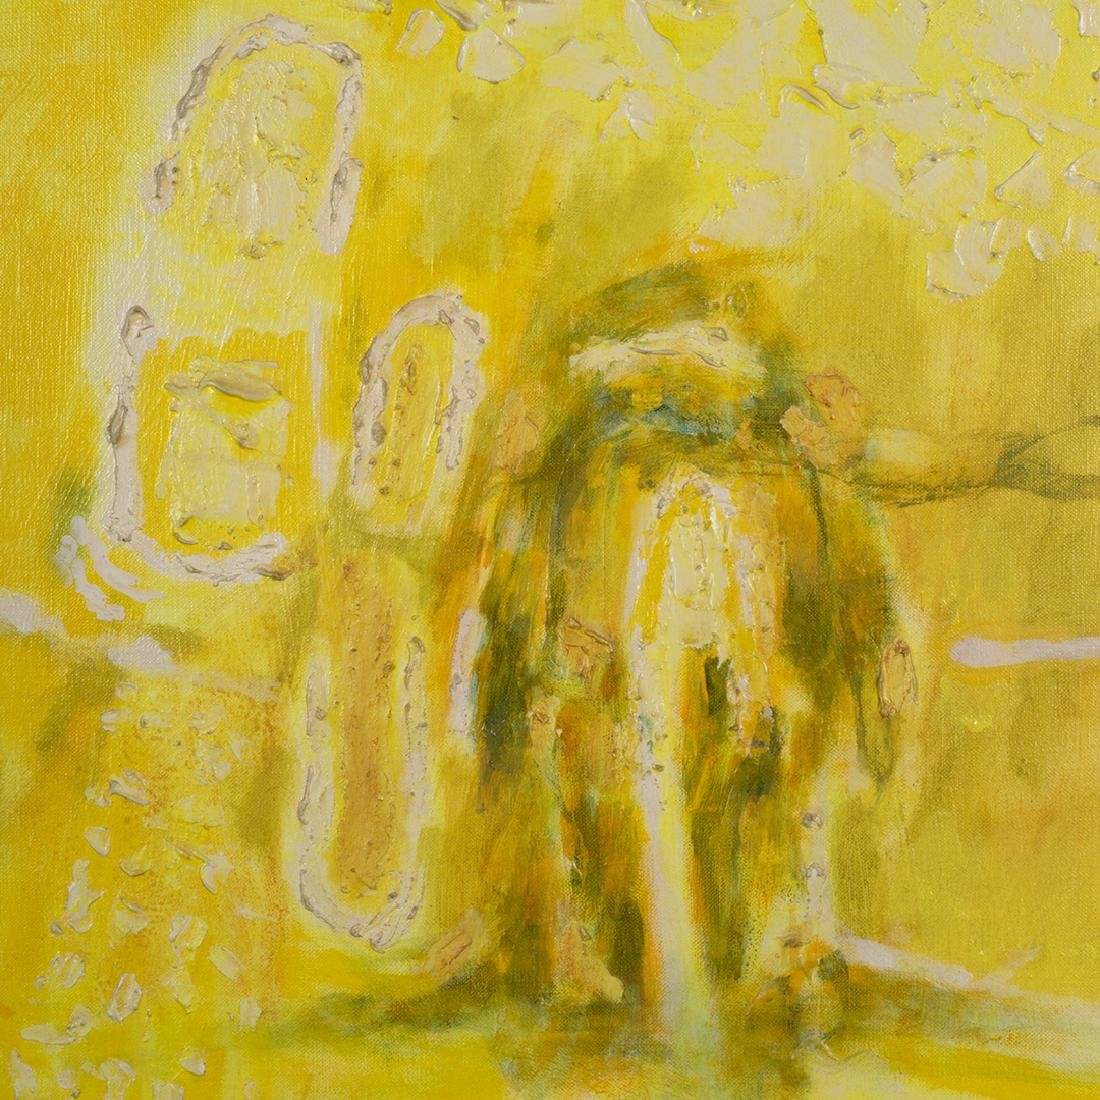 Richard Bowman Oil on Canvas/Mixed Media (2) - 2